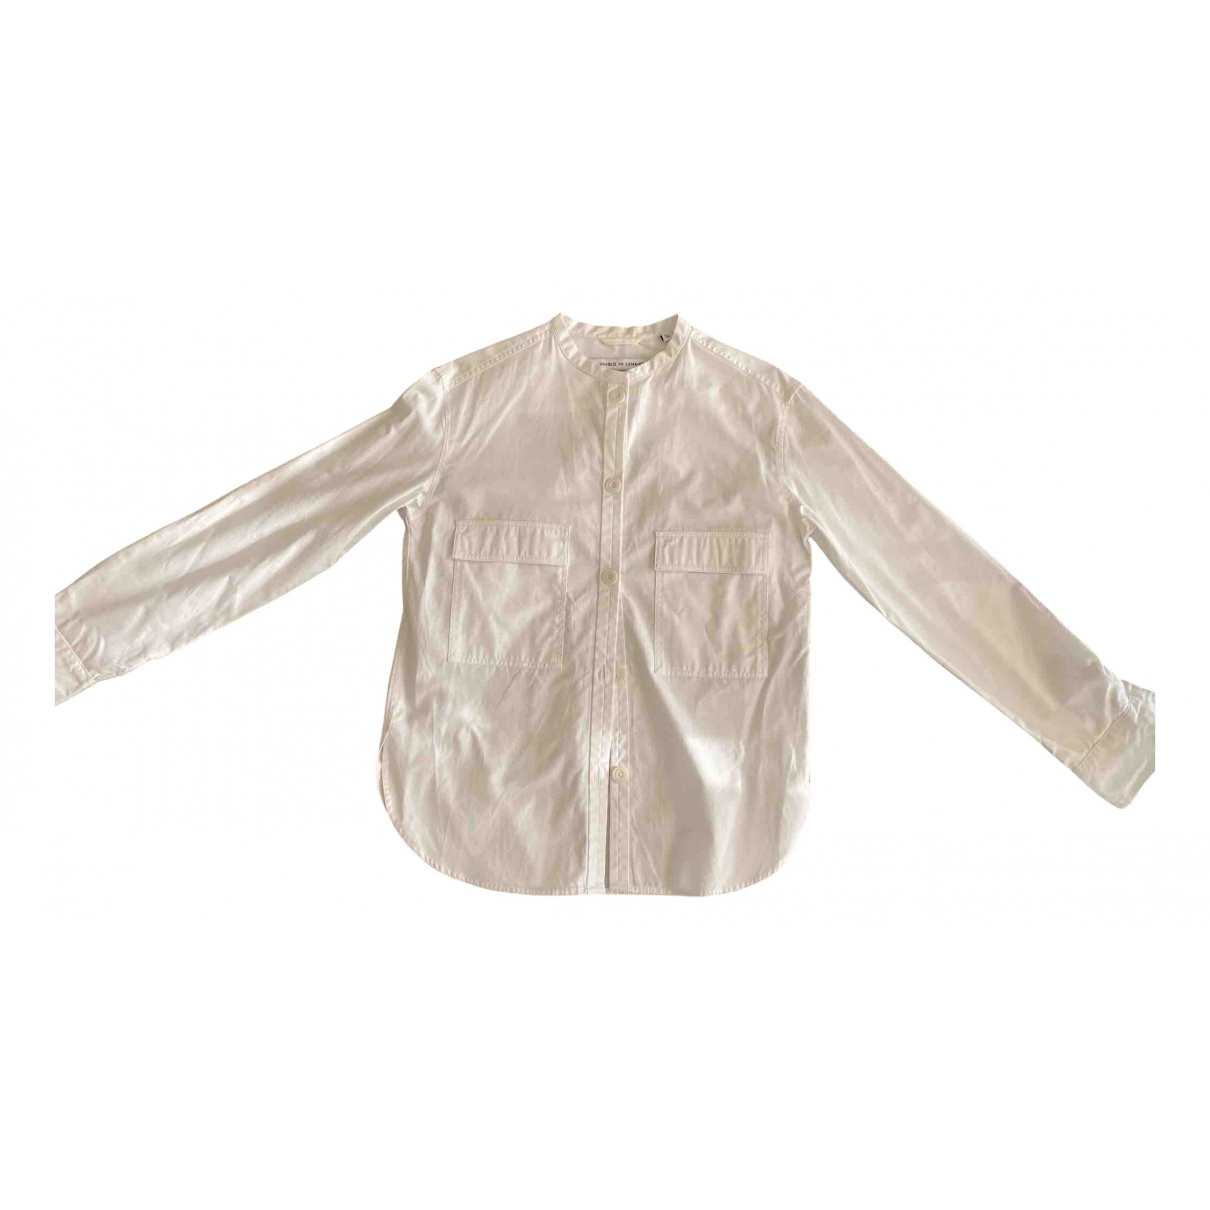 Lemaire X Uniqlo N White Cotton  top for Women S International